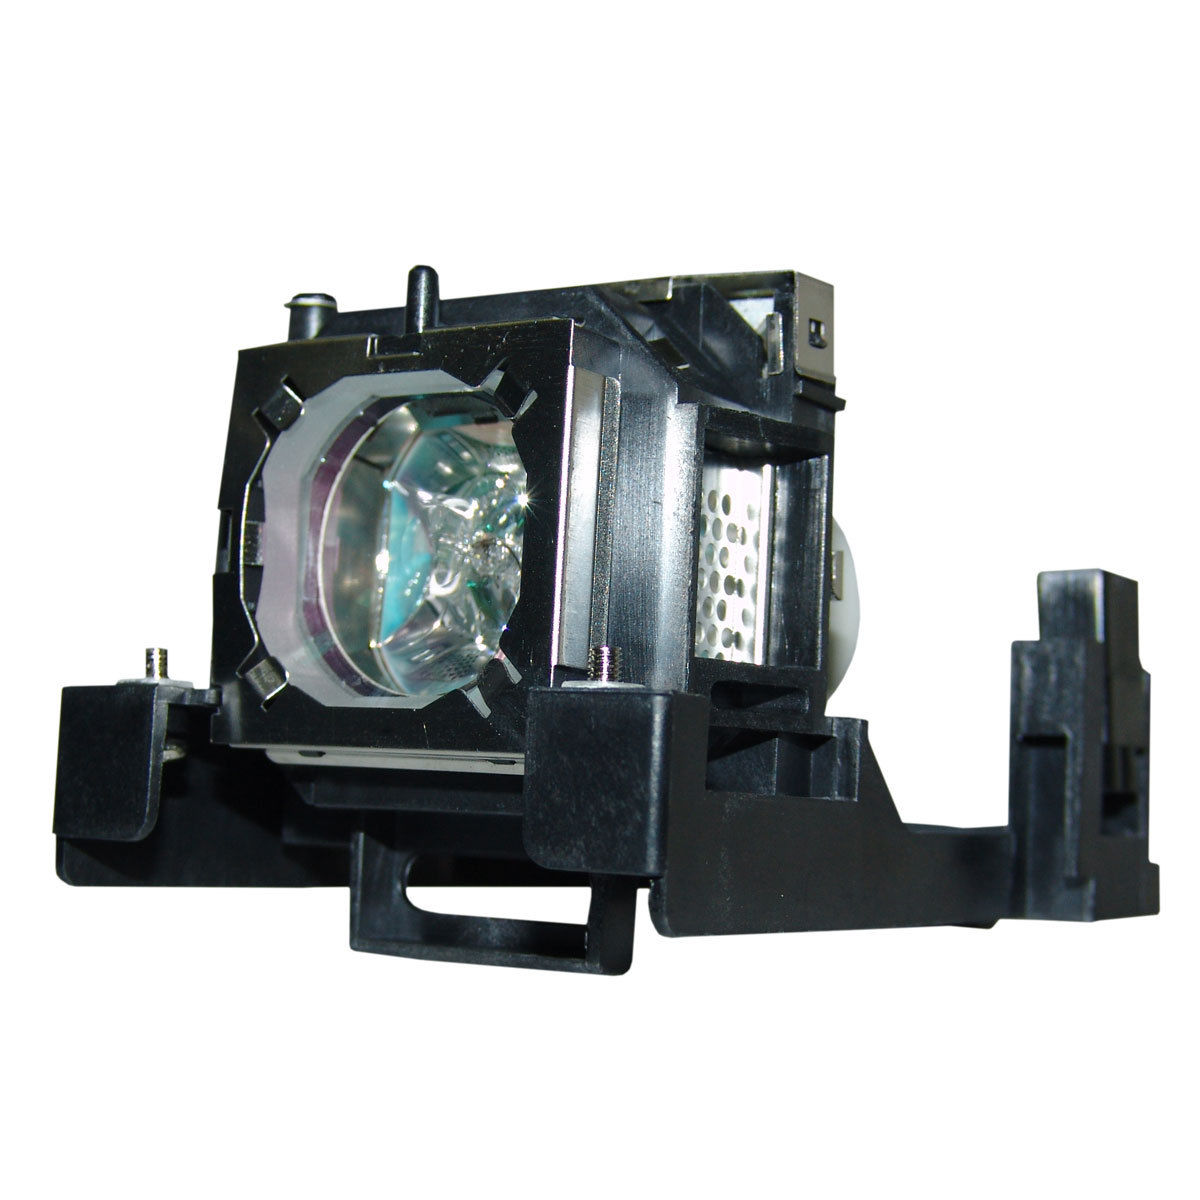 ET-LAT100 LAT100 For Panasonic PT-TW230 PT-TW230EA PT-TW230REA PT-TW230U PT-TW231RE PT-TW231RU Projector Lamp Bulb With housing et lab50 for panasonic pt lb50 pt lb50su pt lb50u pt lb50e pt lb50nte pt lb51 pt lb51e pt lb51u projector lamp bulb with housing